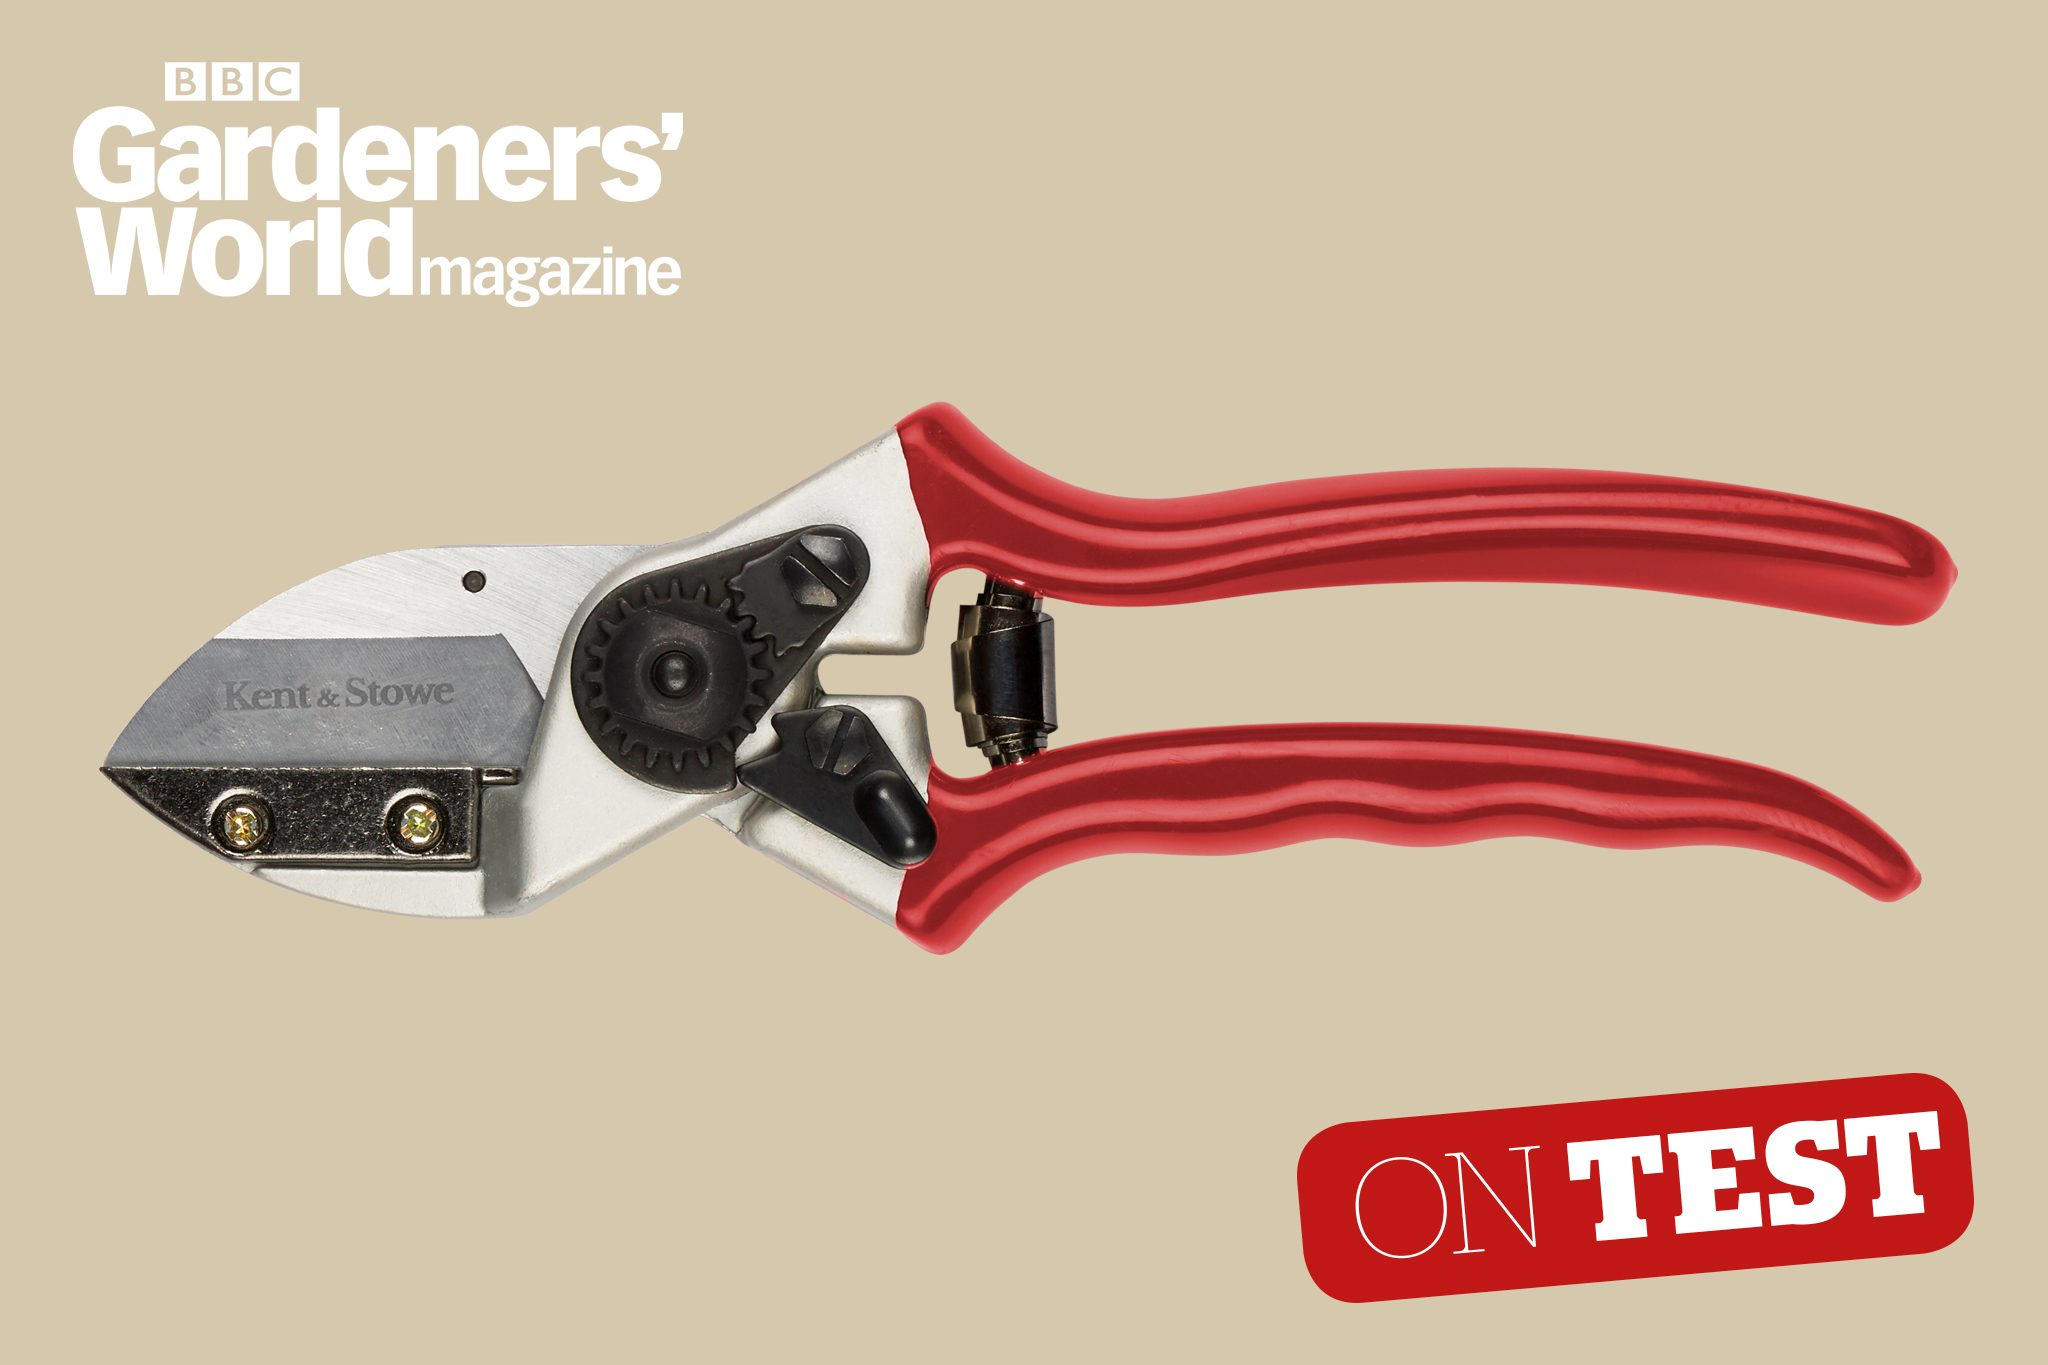 Kent and Stowe Traditional Bypass Secateurs 8/""